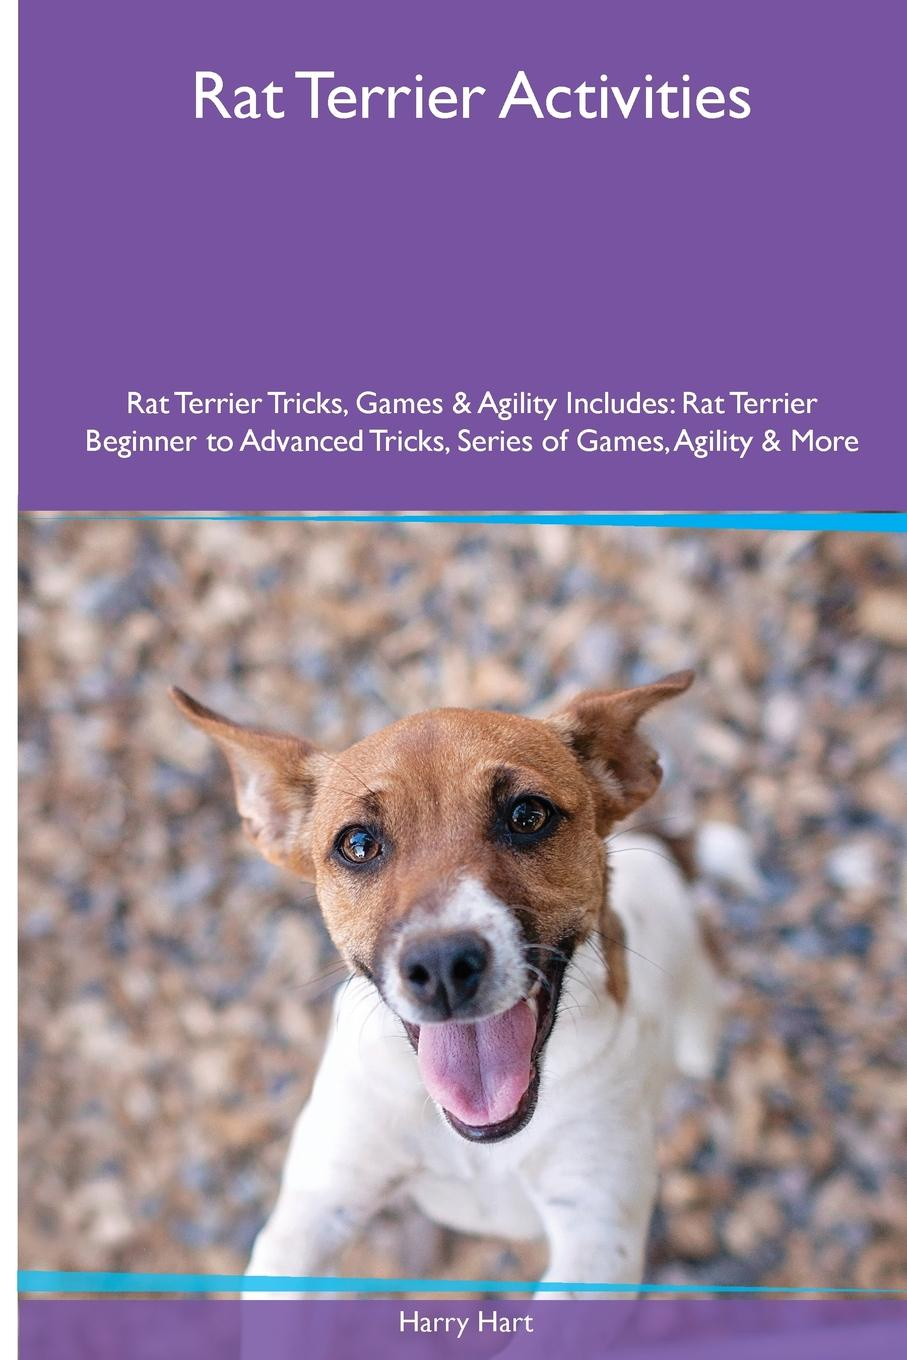 Rat Terrier  Activities Rat Terrier Tricks, Games & Agility. Includes. Rat Terrier Beginner to Advanced Tricks, Series of Games, Agility and More